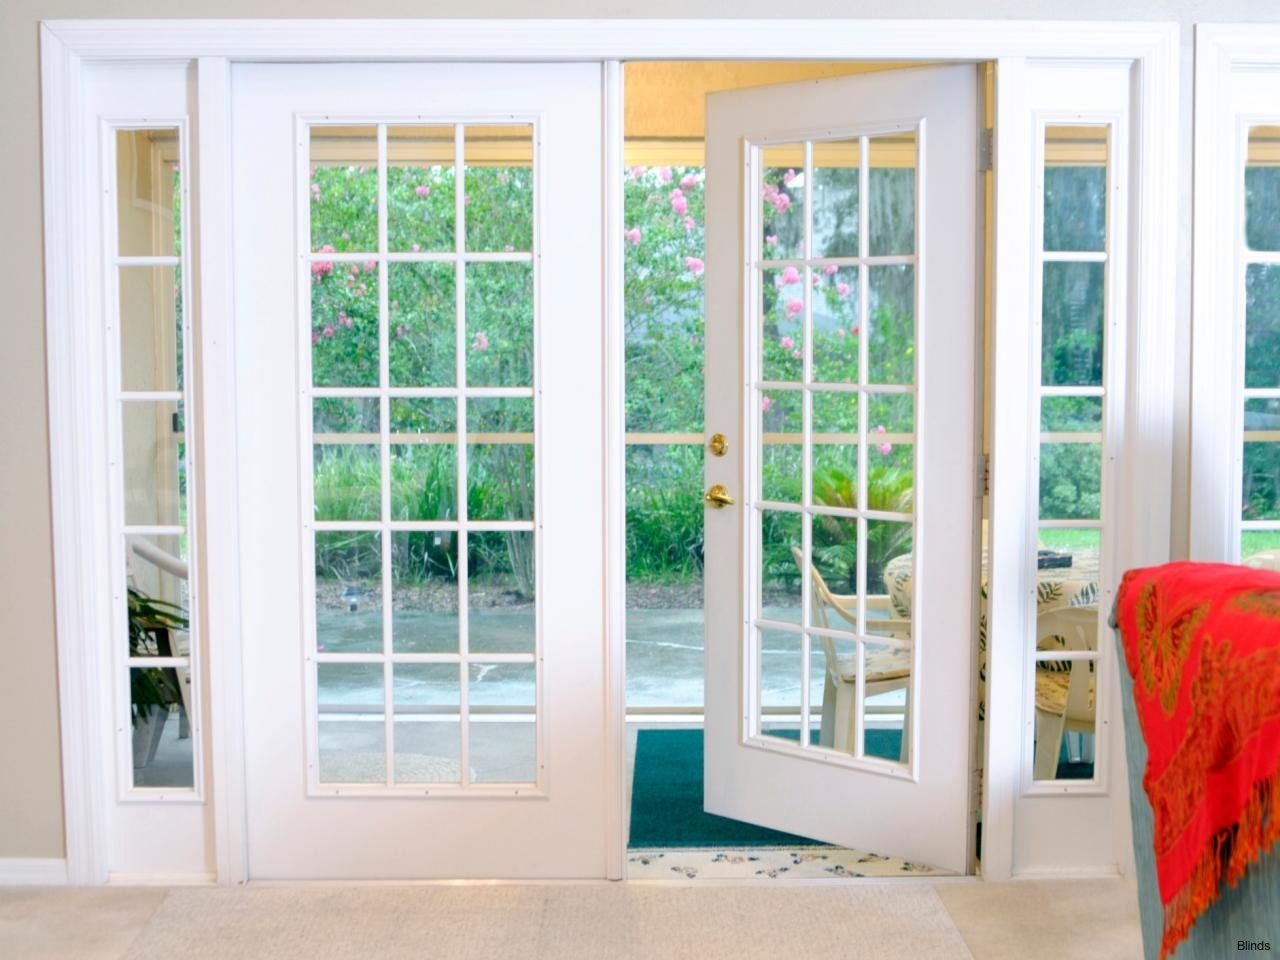 Image Result For Harvey 3 Panel Sliding Door French Doors Patio Exterior French Doors Patio Hinged Patio Doors